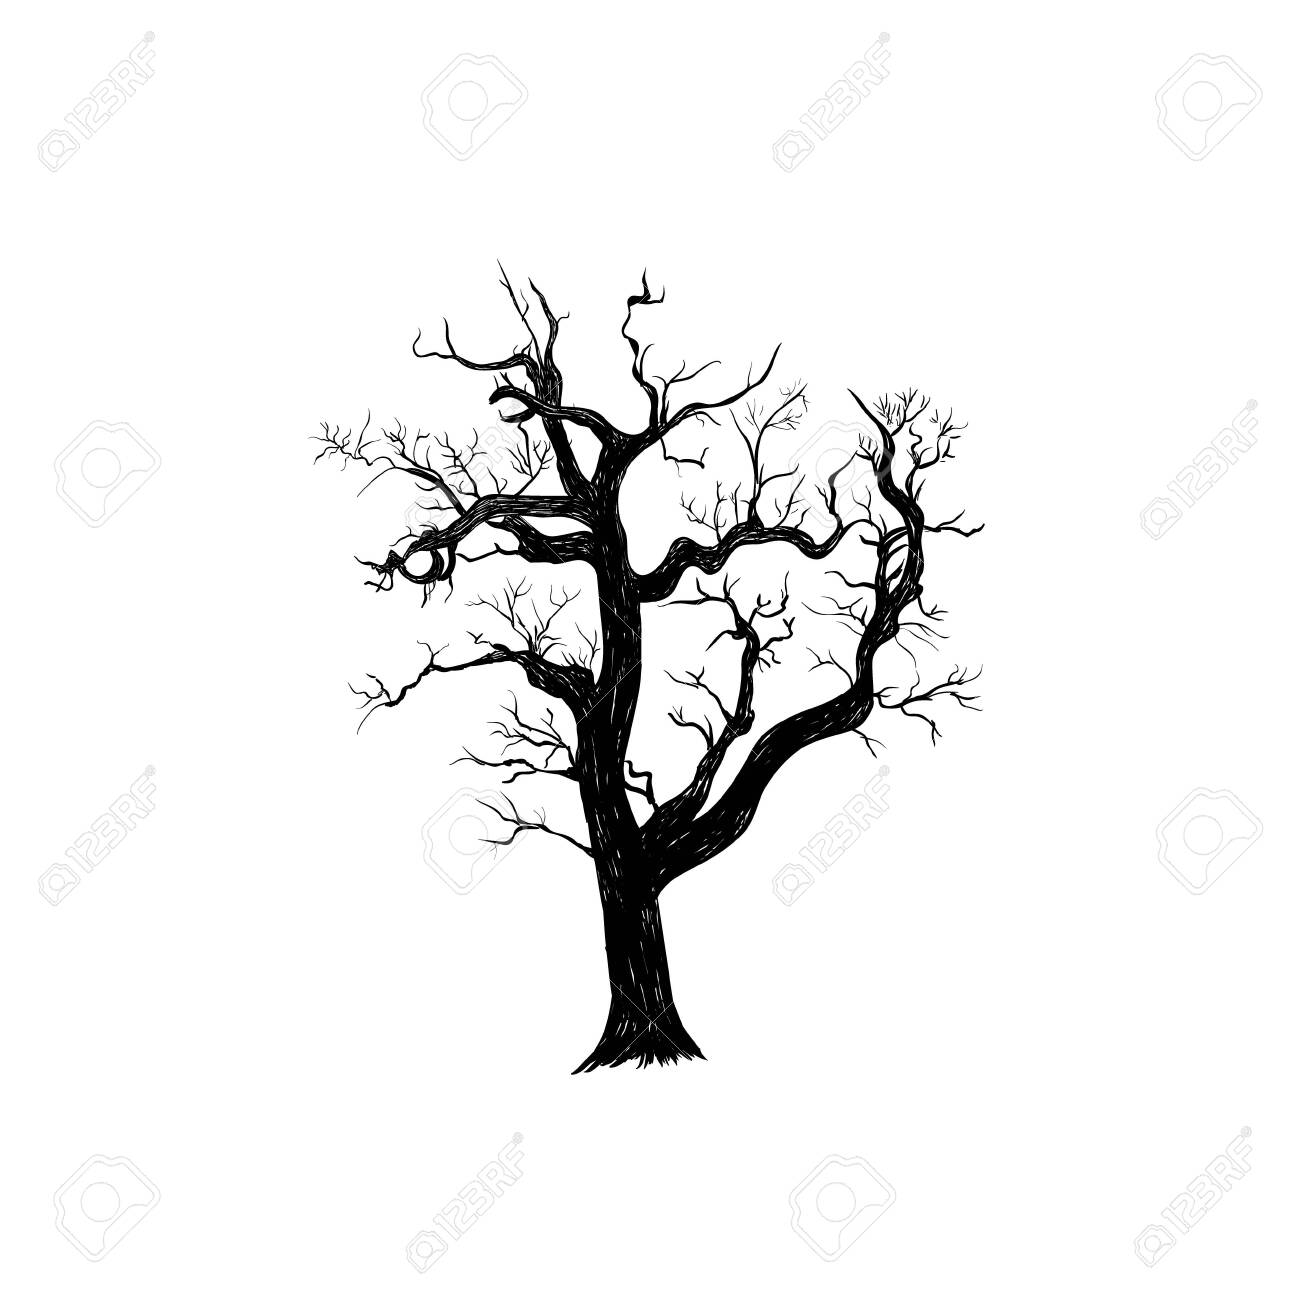 The Dry Old Tree Is Terrible Silhouette Of A Tree Hand Drawing Royalty Free Cliparts Vectors And Stock Illustration Image 122476550